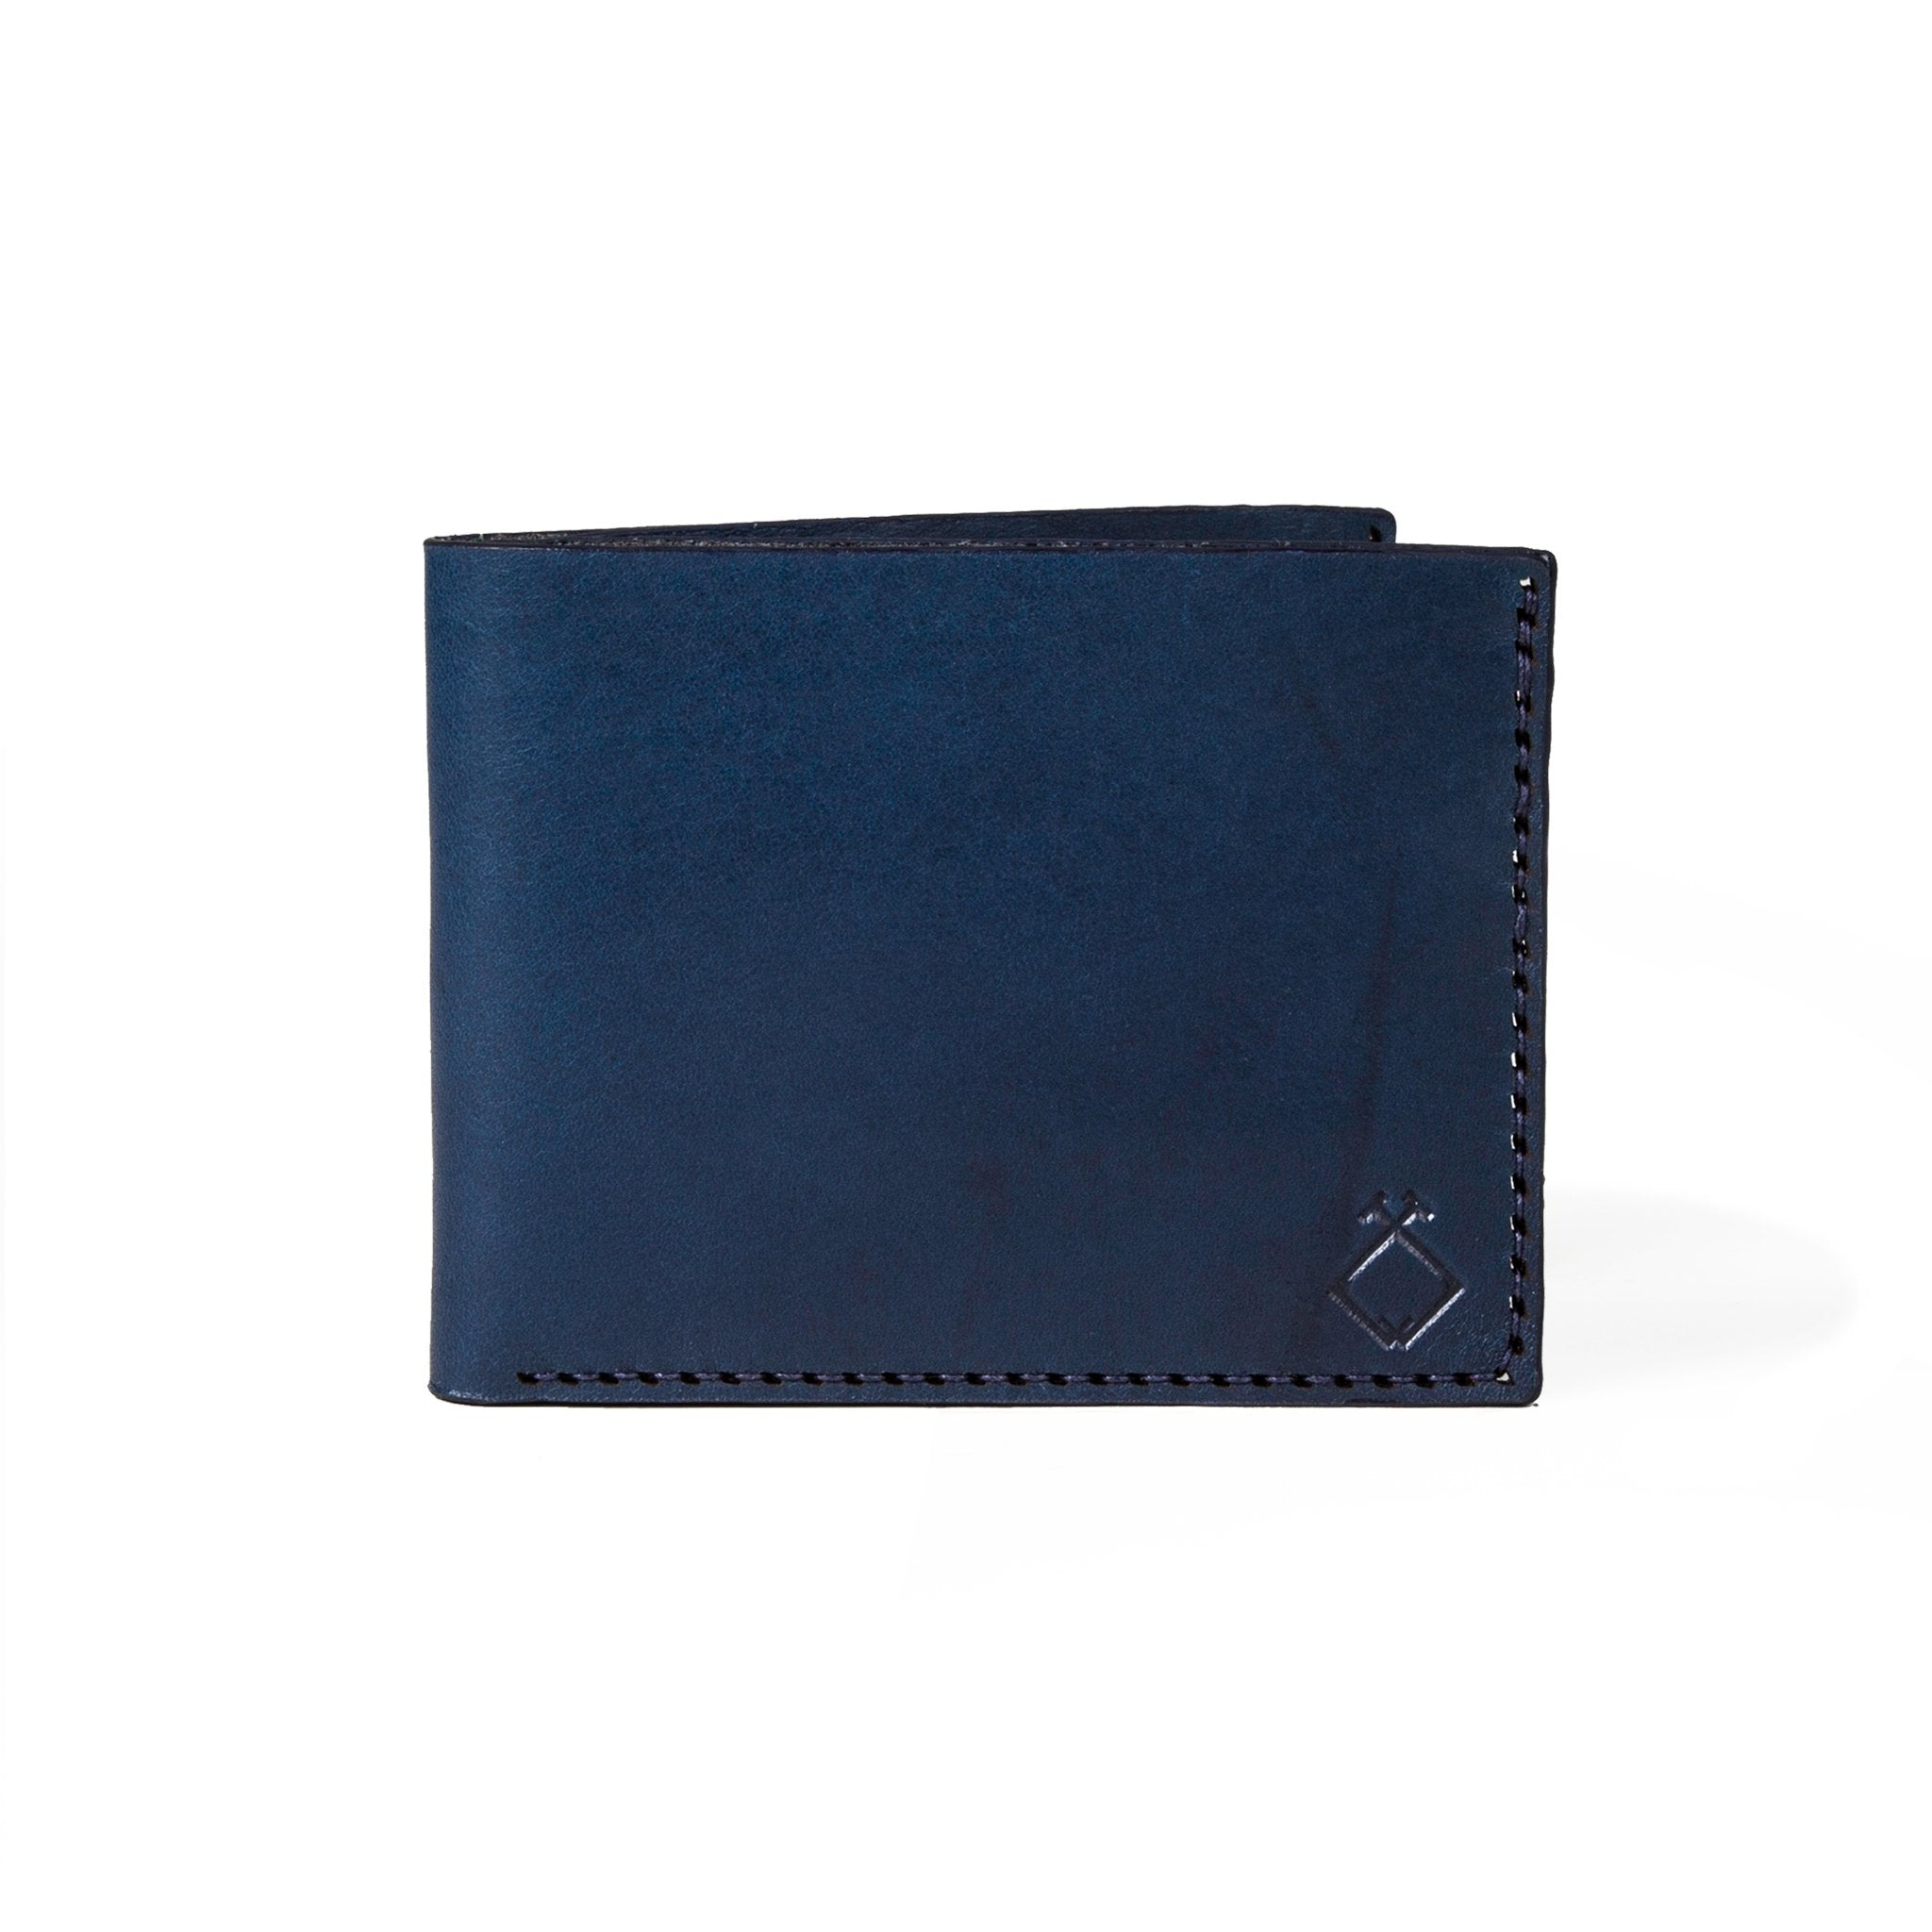 The Detour - Horween Navy Pebbled Essex - Lajoie